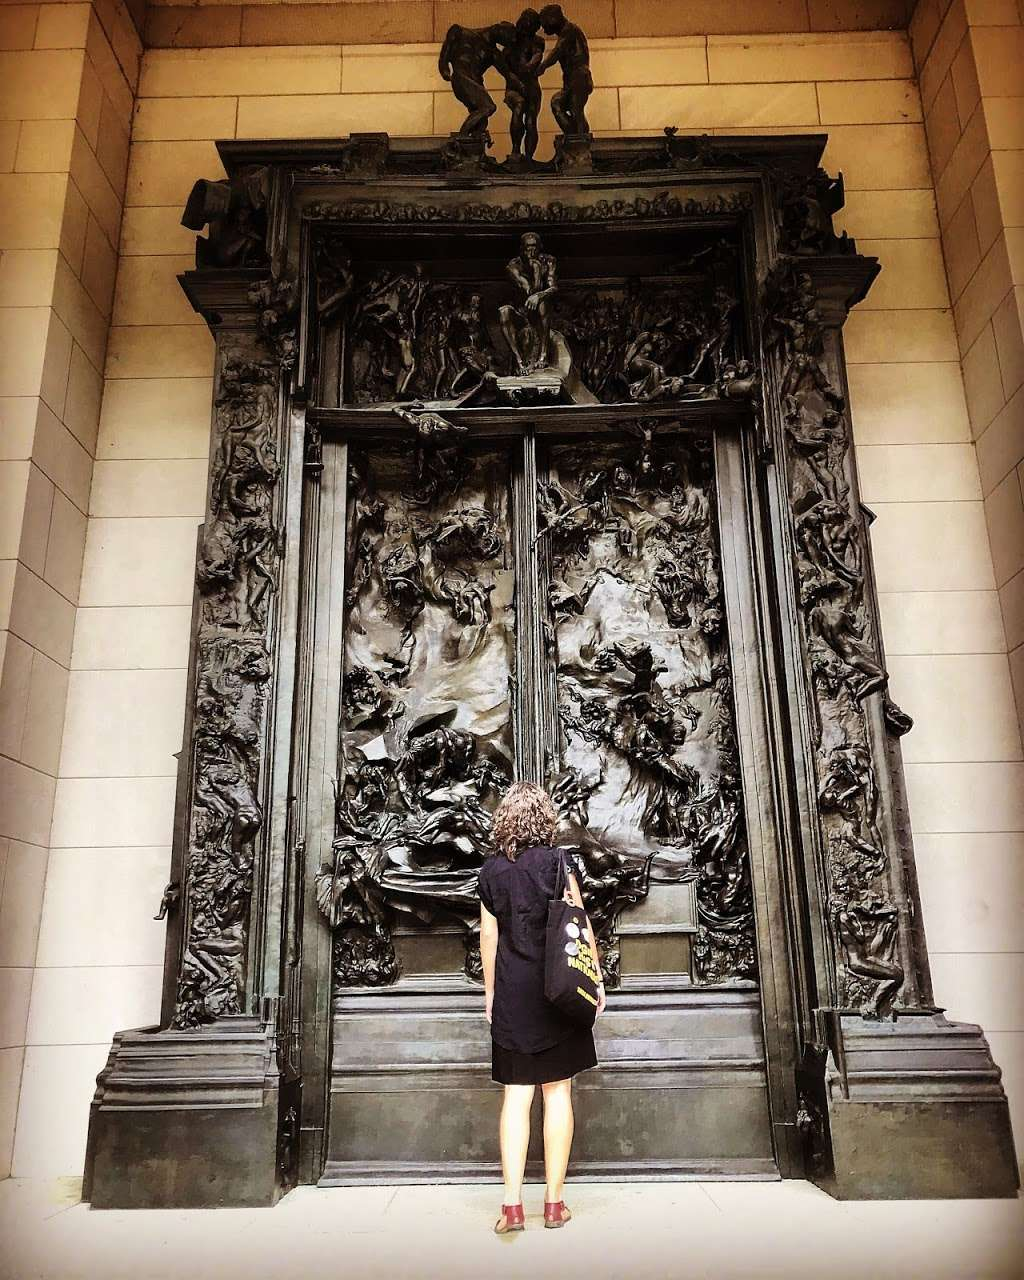 Rodin Museum - museum  | Photo 4 of 10 | Address: 2151 Benjamin Franklin Pkwy, Philadelphia, PA 19130, USA | Phone: (215) 763-8100